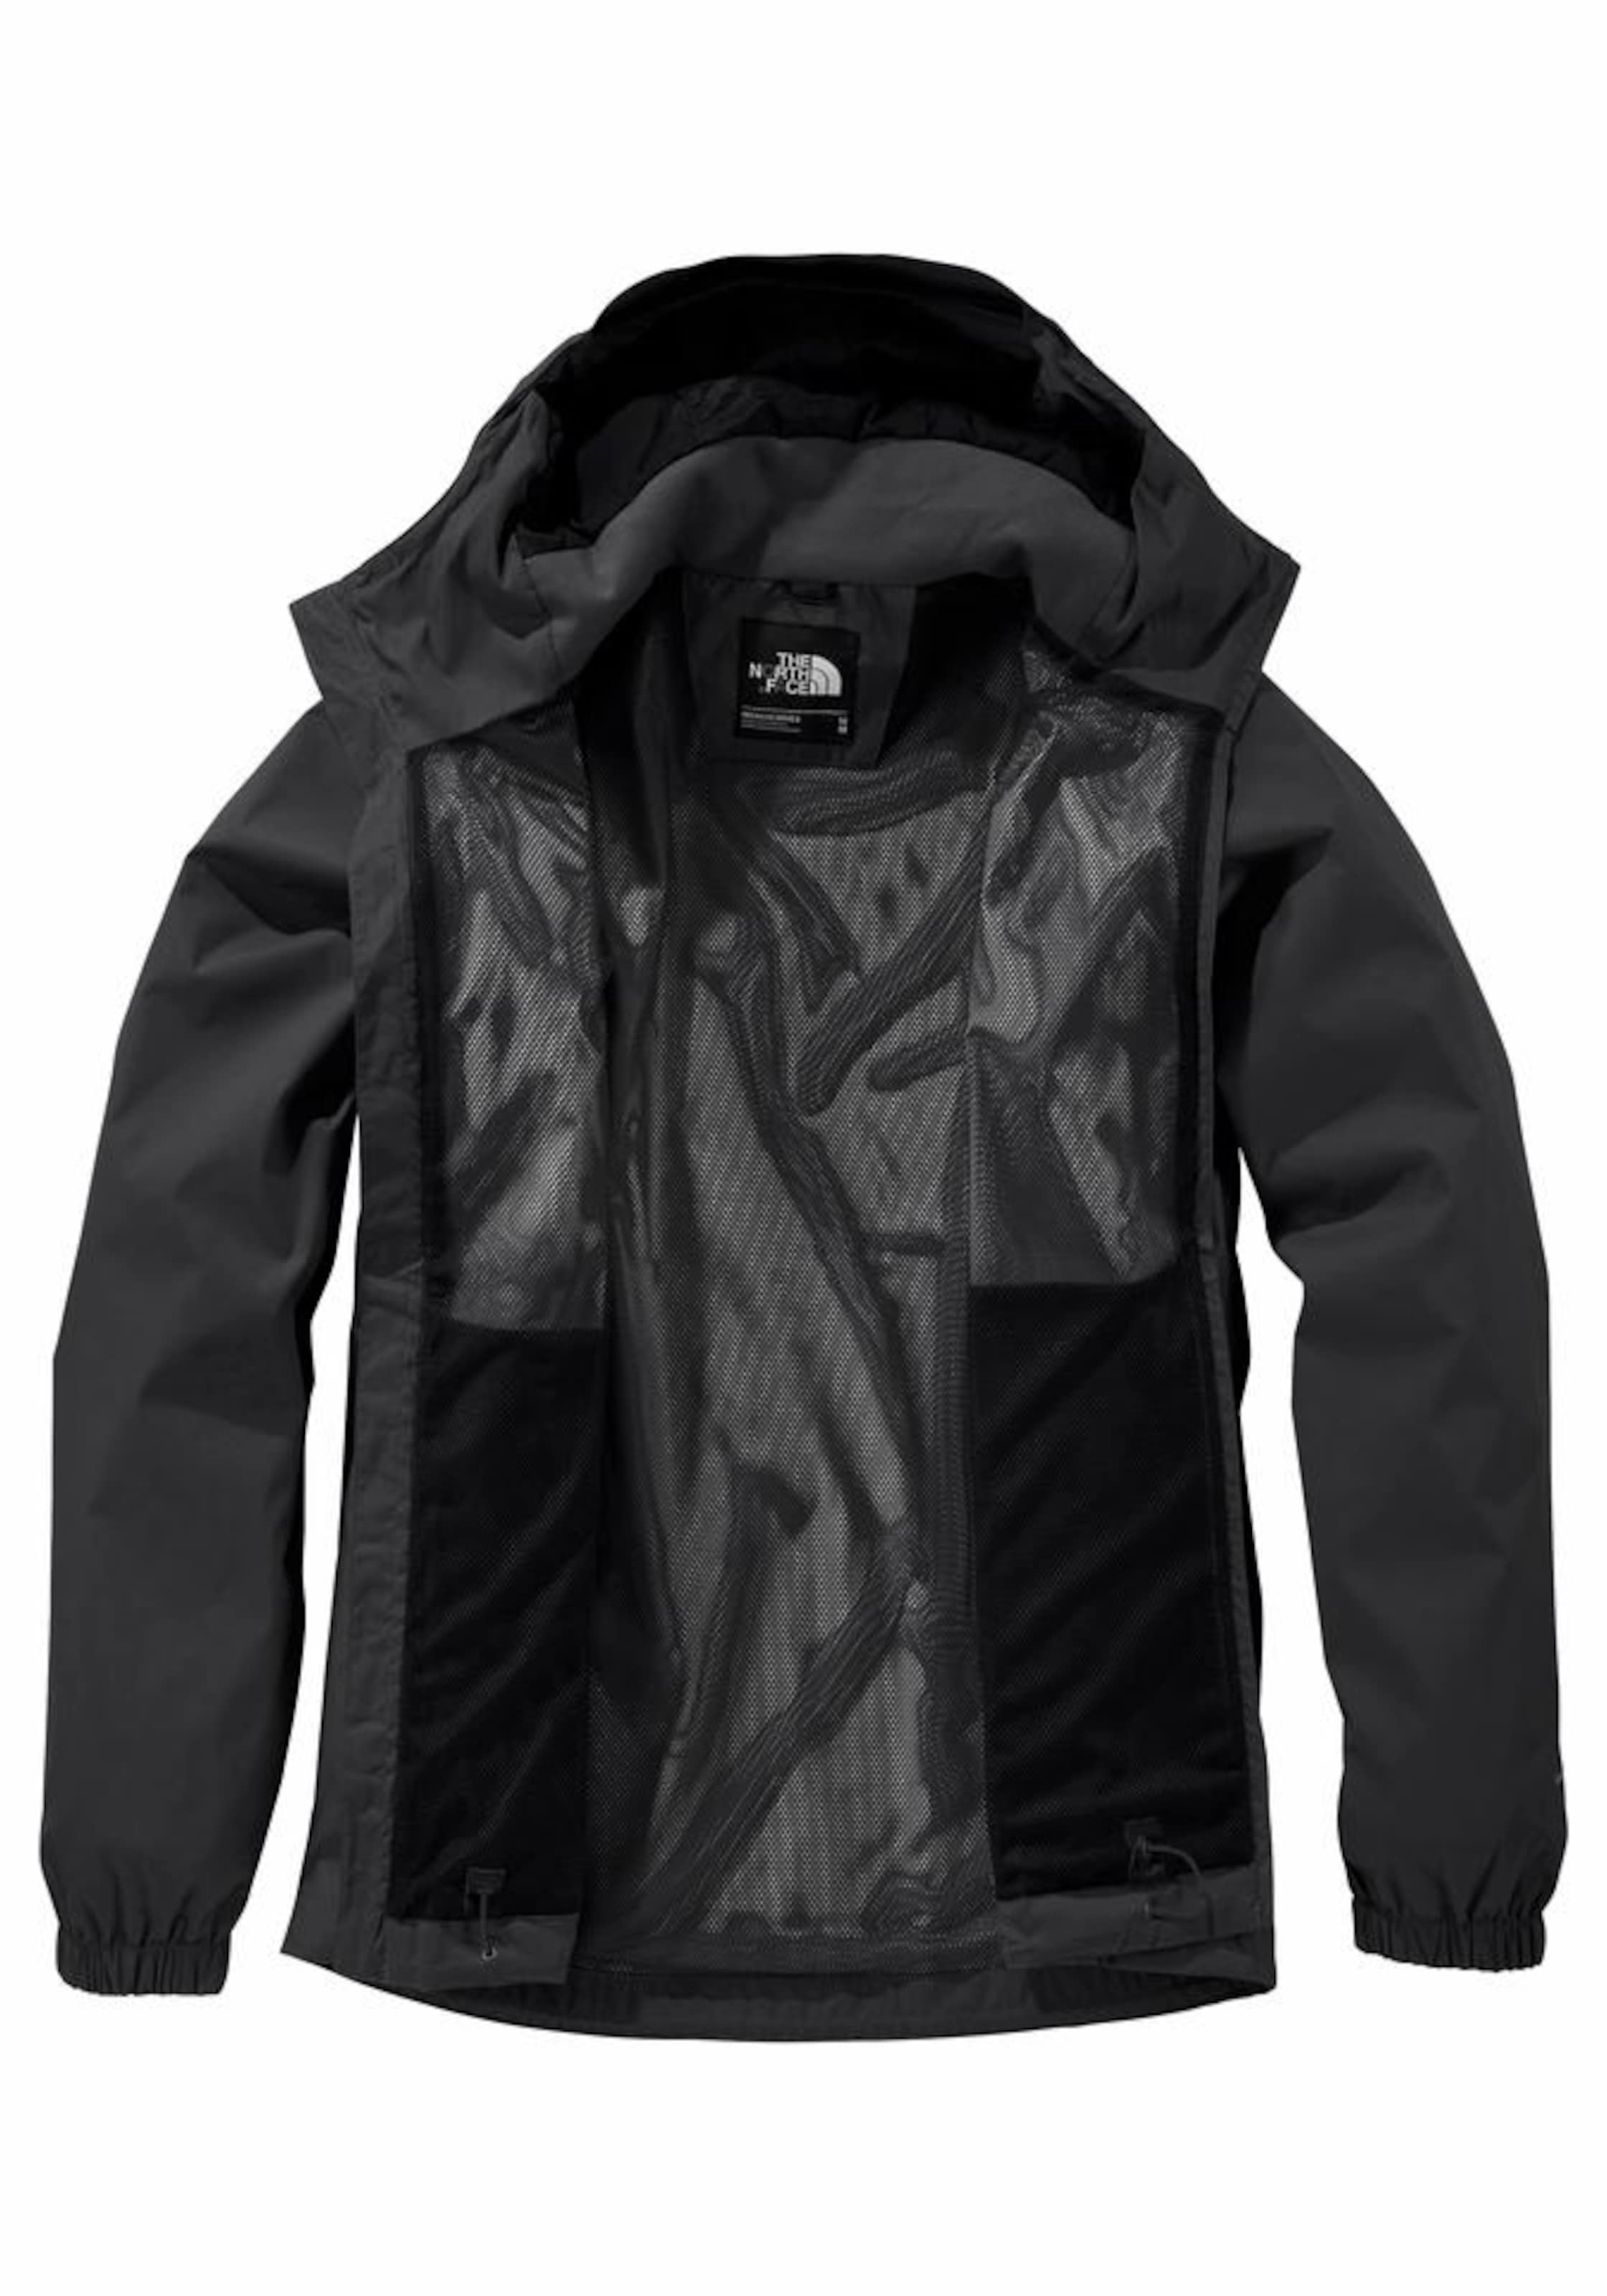 Funktionsjacke Kapuze North Face Mit In The Schwarz wXuOTPilkZ